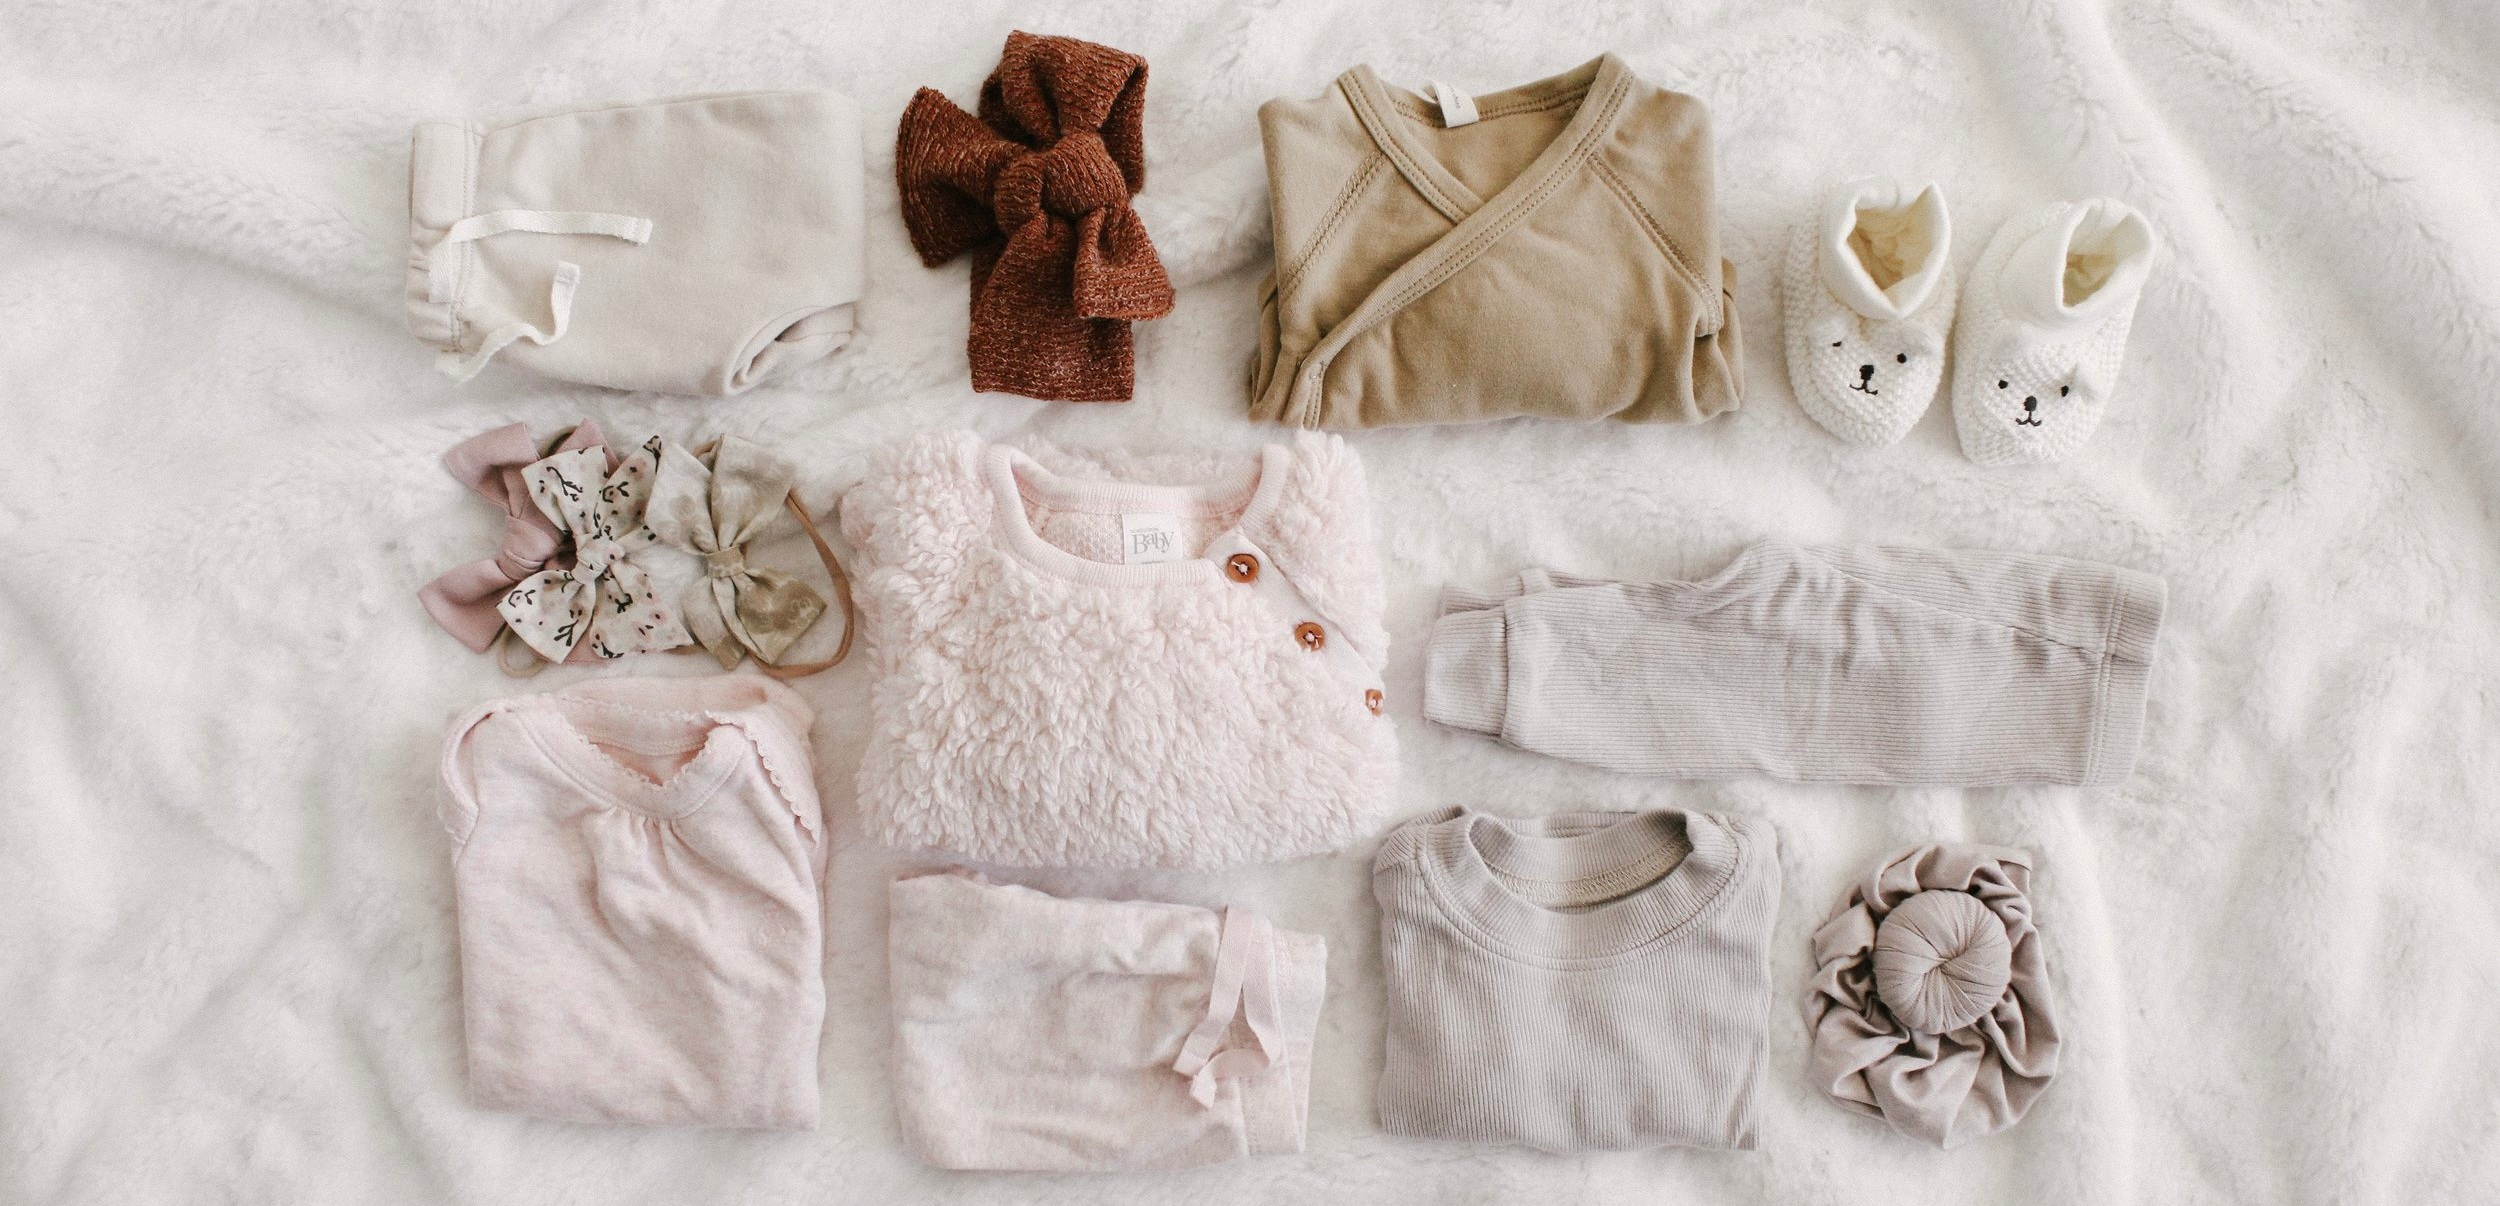 Baby Collin's Hospital Outfits -